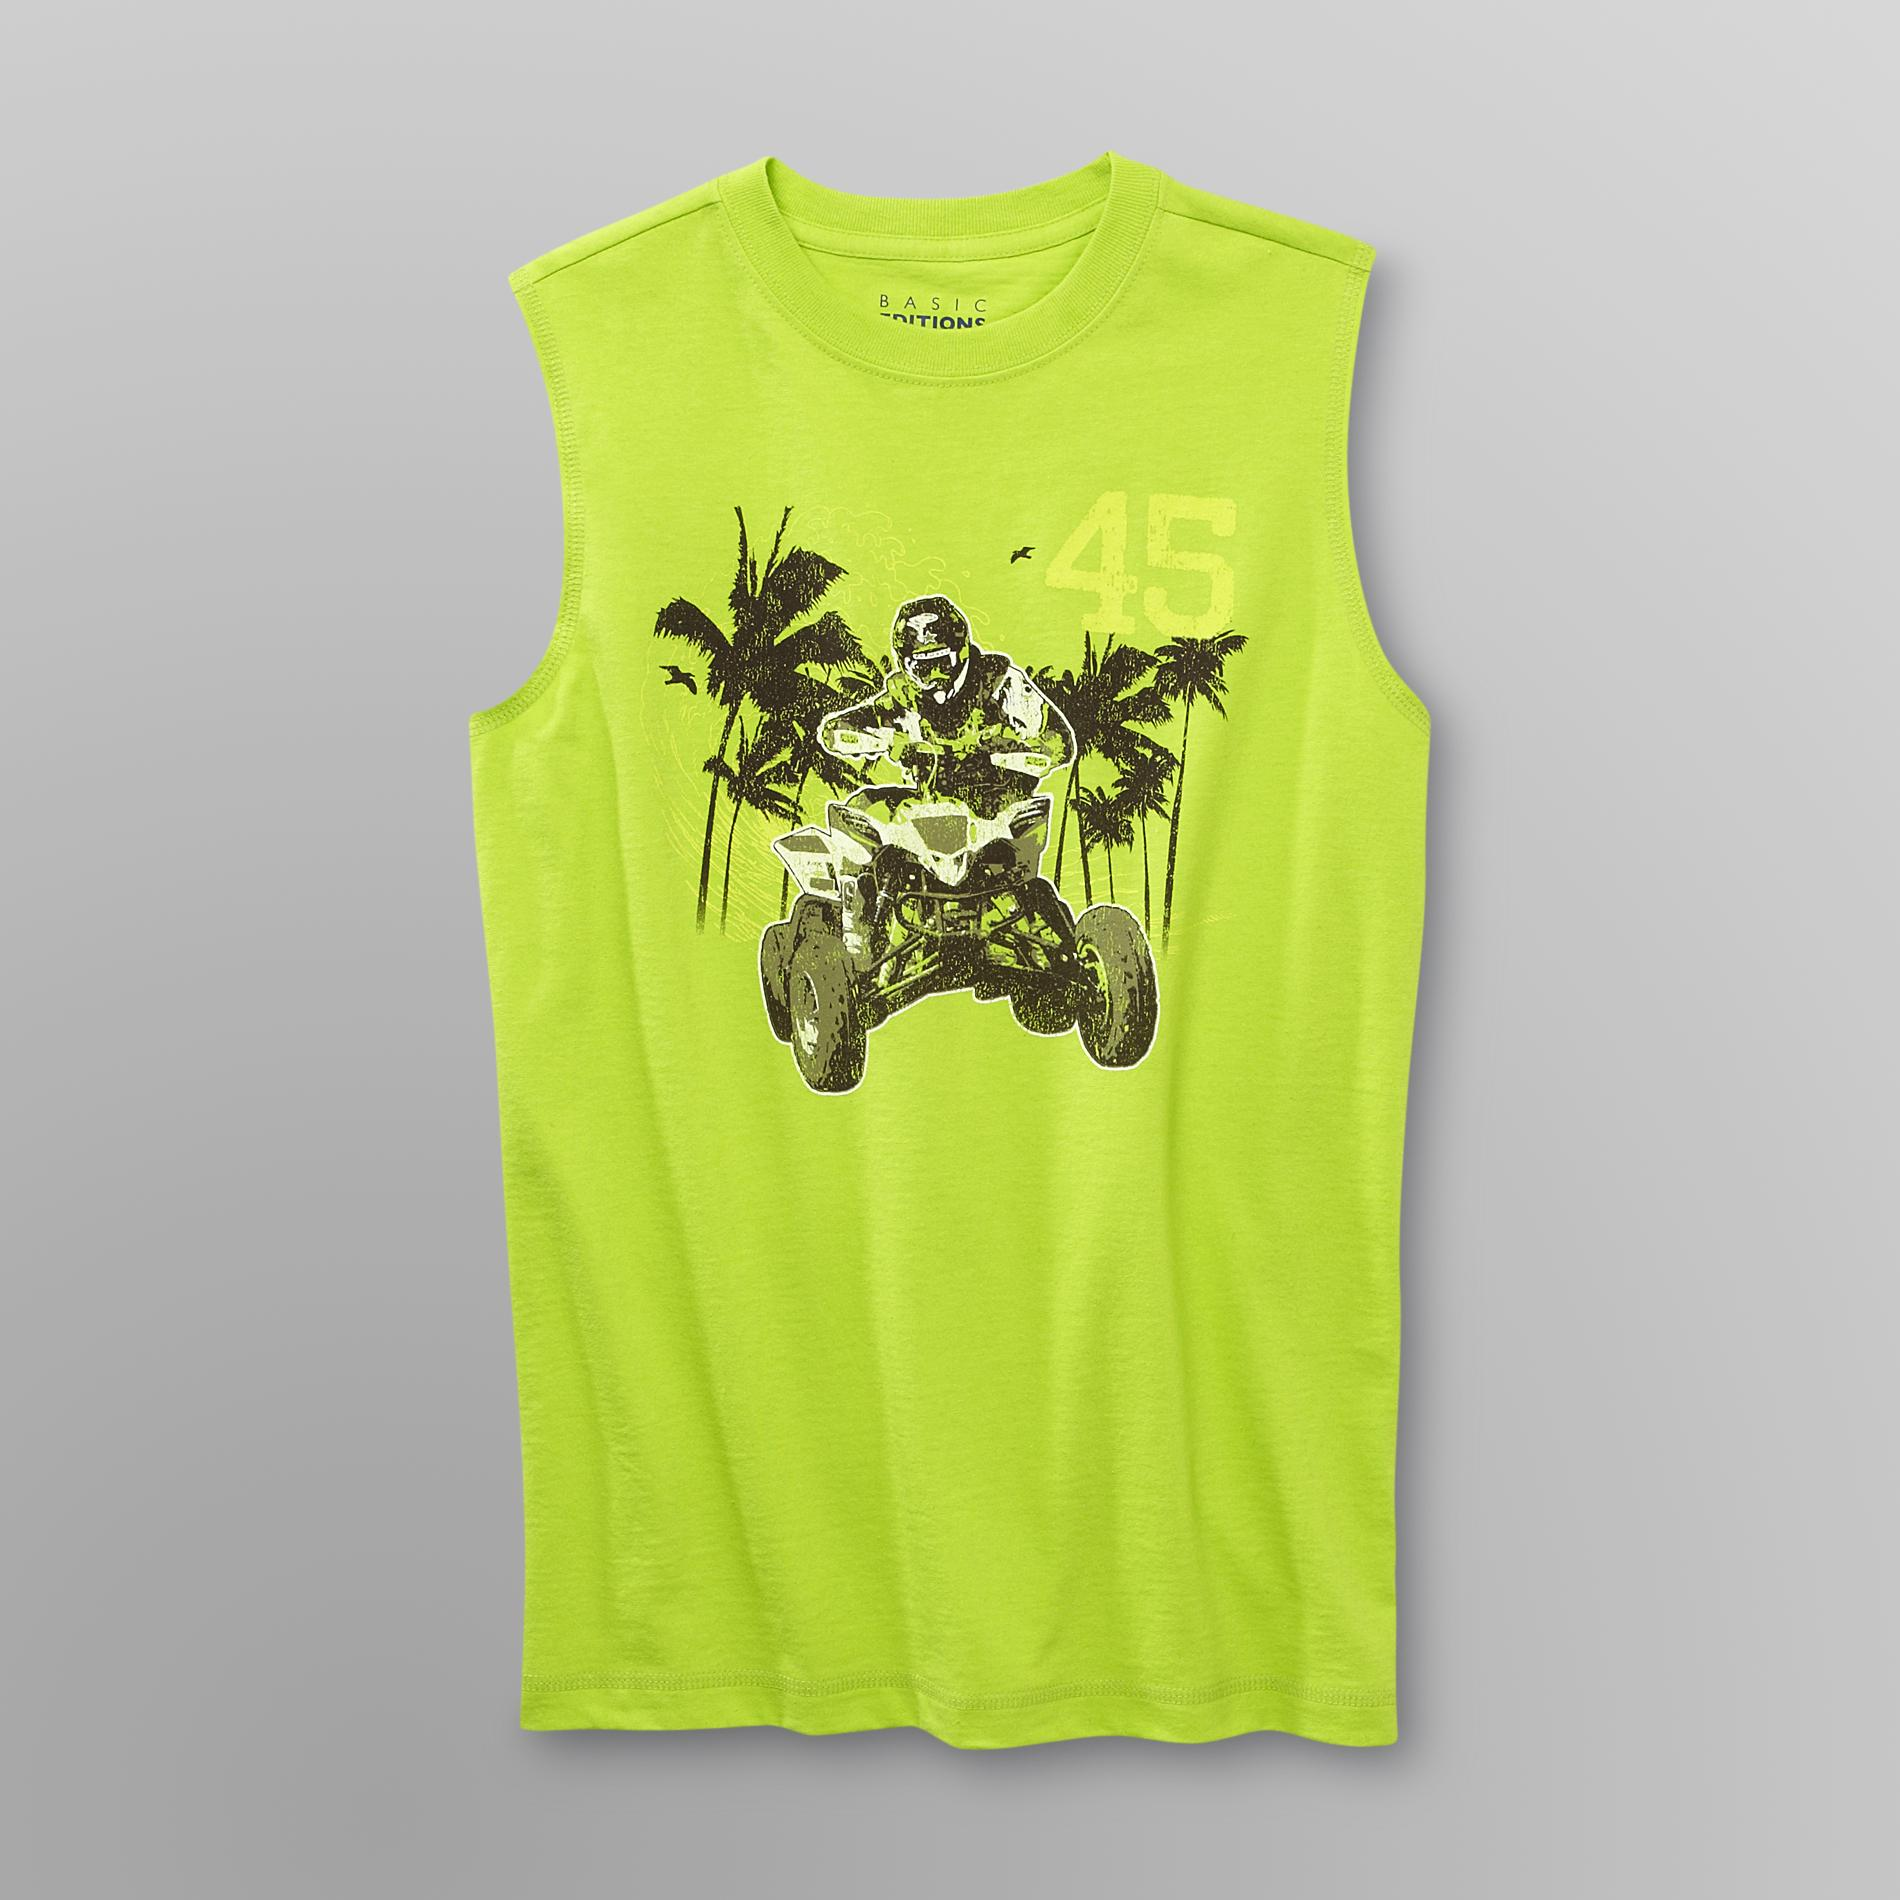 Boy's Graphic Muscle Shirt - Motocross